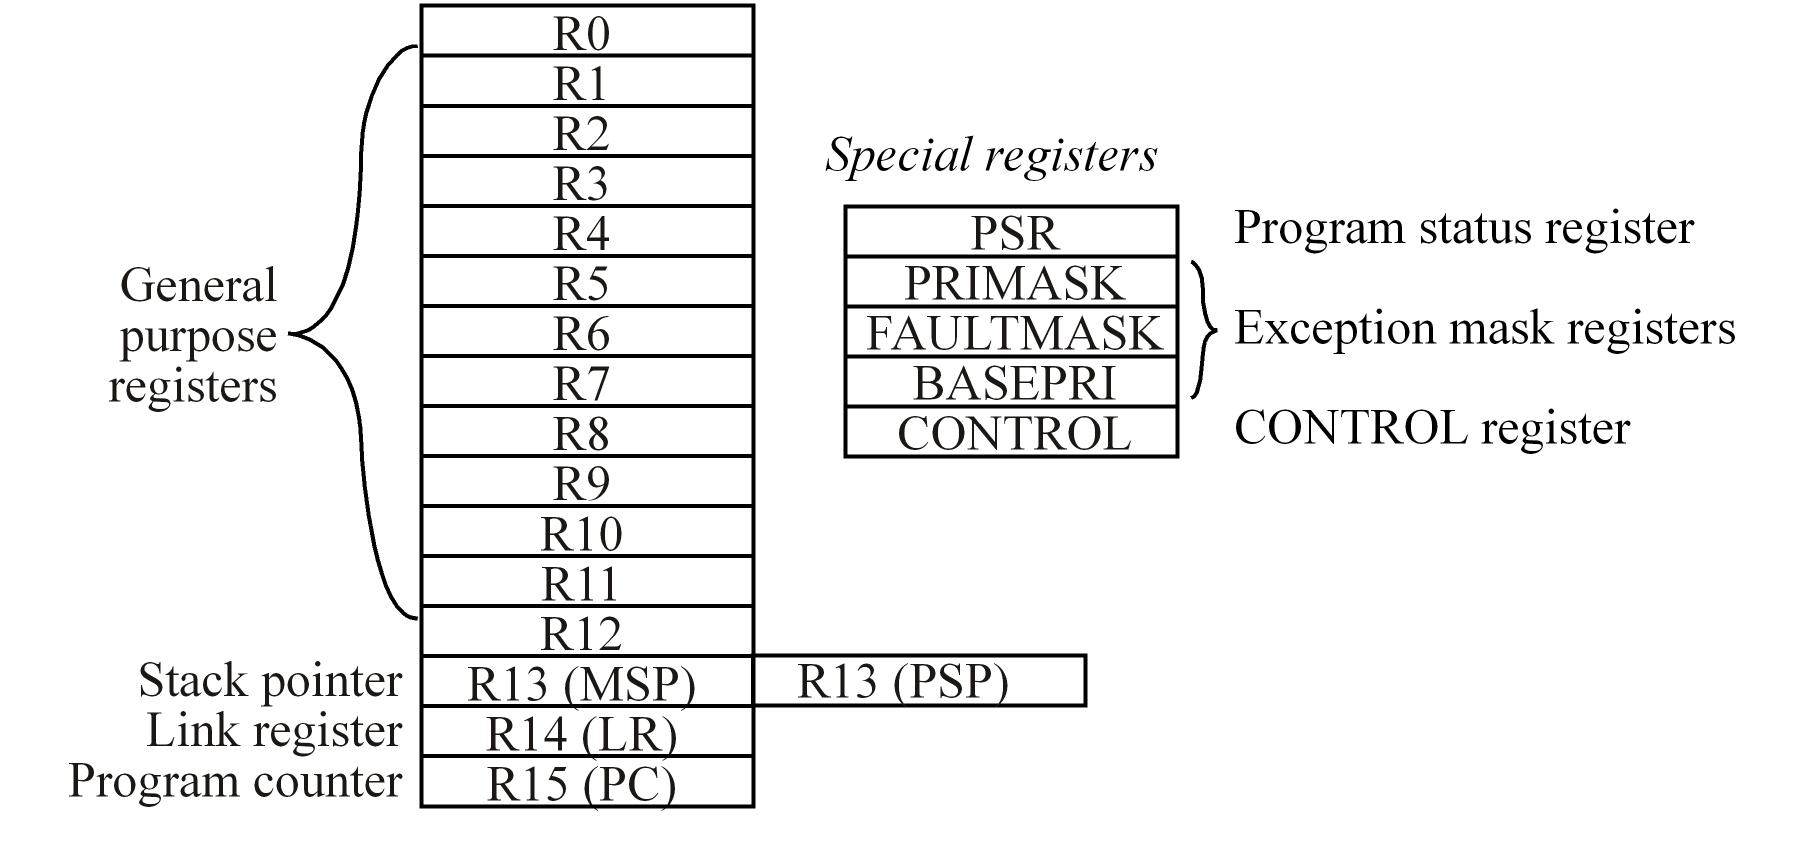 real_time_bn/intro_rtos md at master · monpeco/real_time_bn